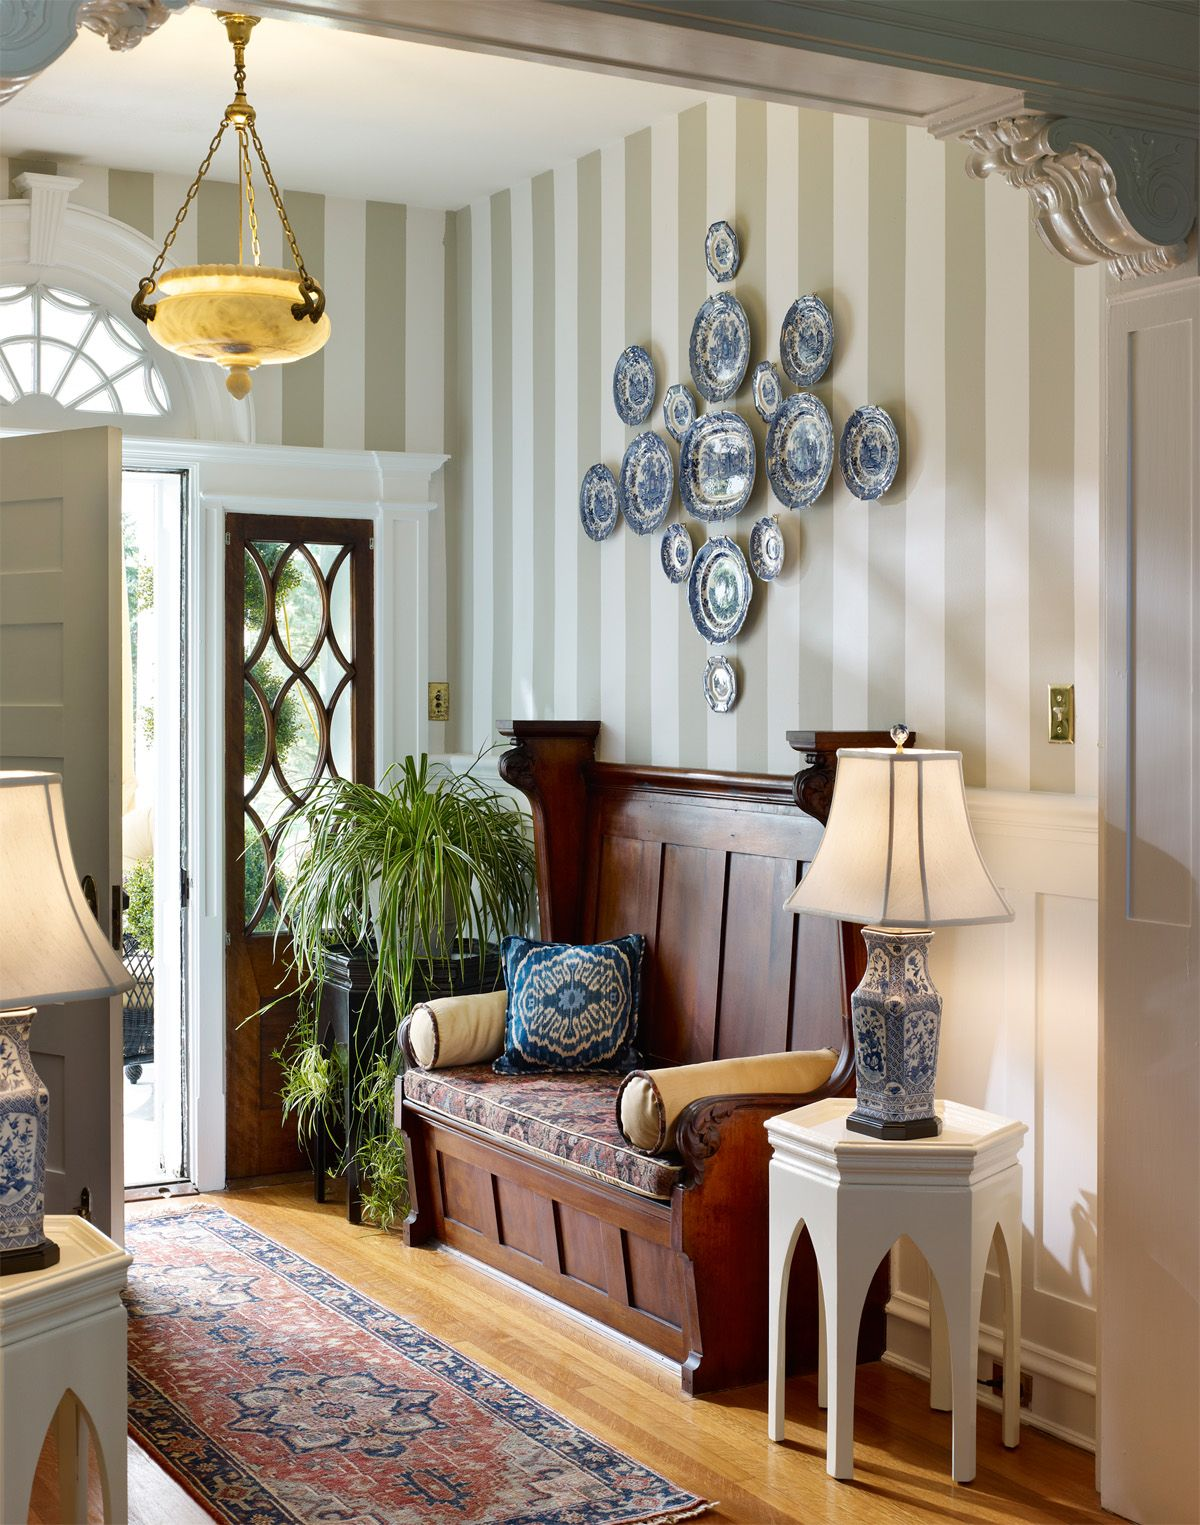 Small Foyer Decorating Ideas Nothing Gives A Room More Drama And Pizzazz Than Beautifullydesigned